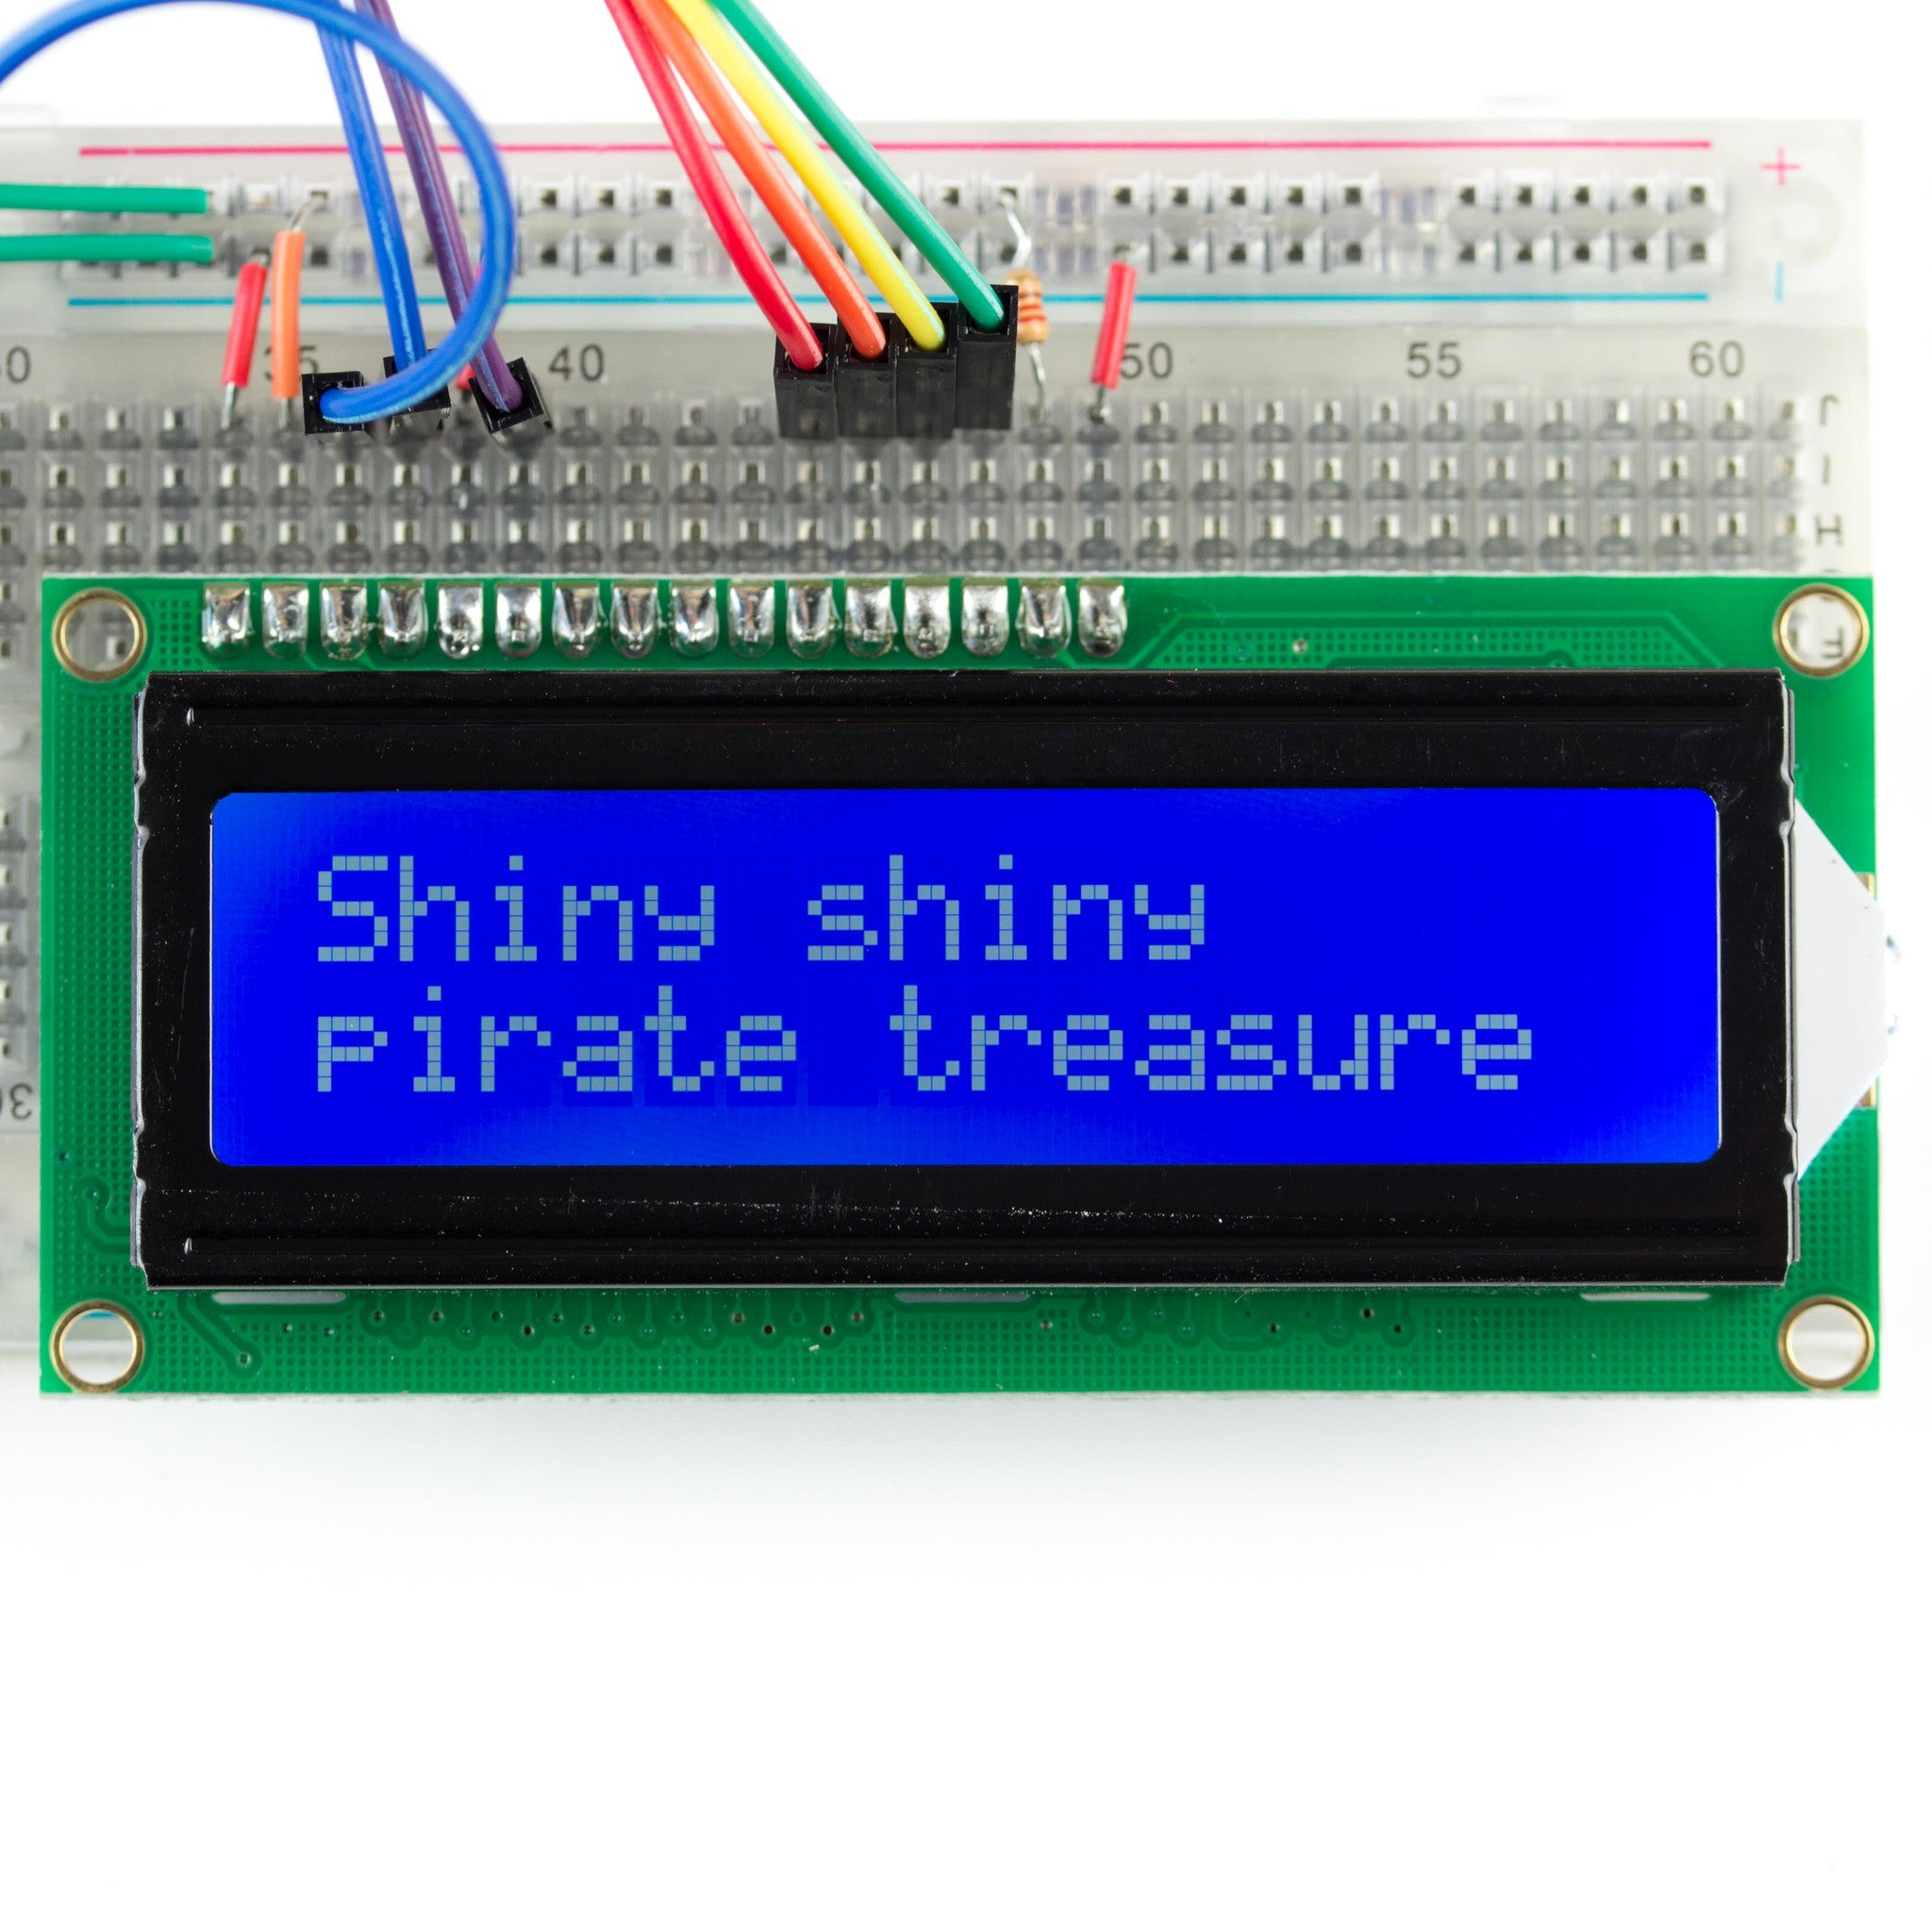 Https Daily Products 1 2 Details About 12x Universal Copper Circuit Board Plate Prototype Pcb 5v Lcd Of 3jpegv1445586358